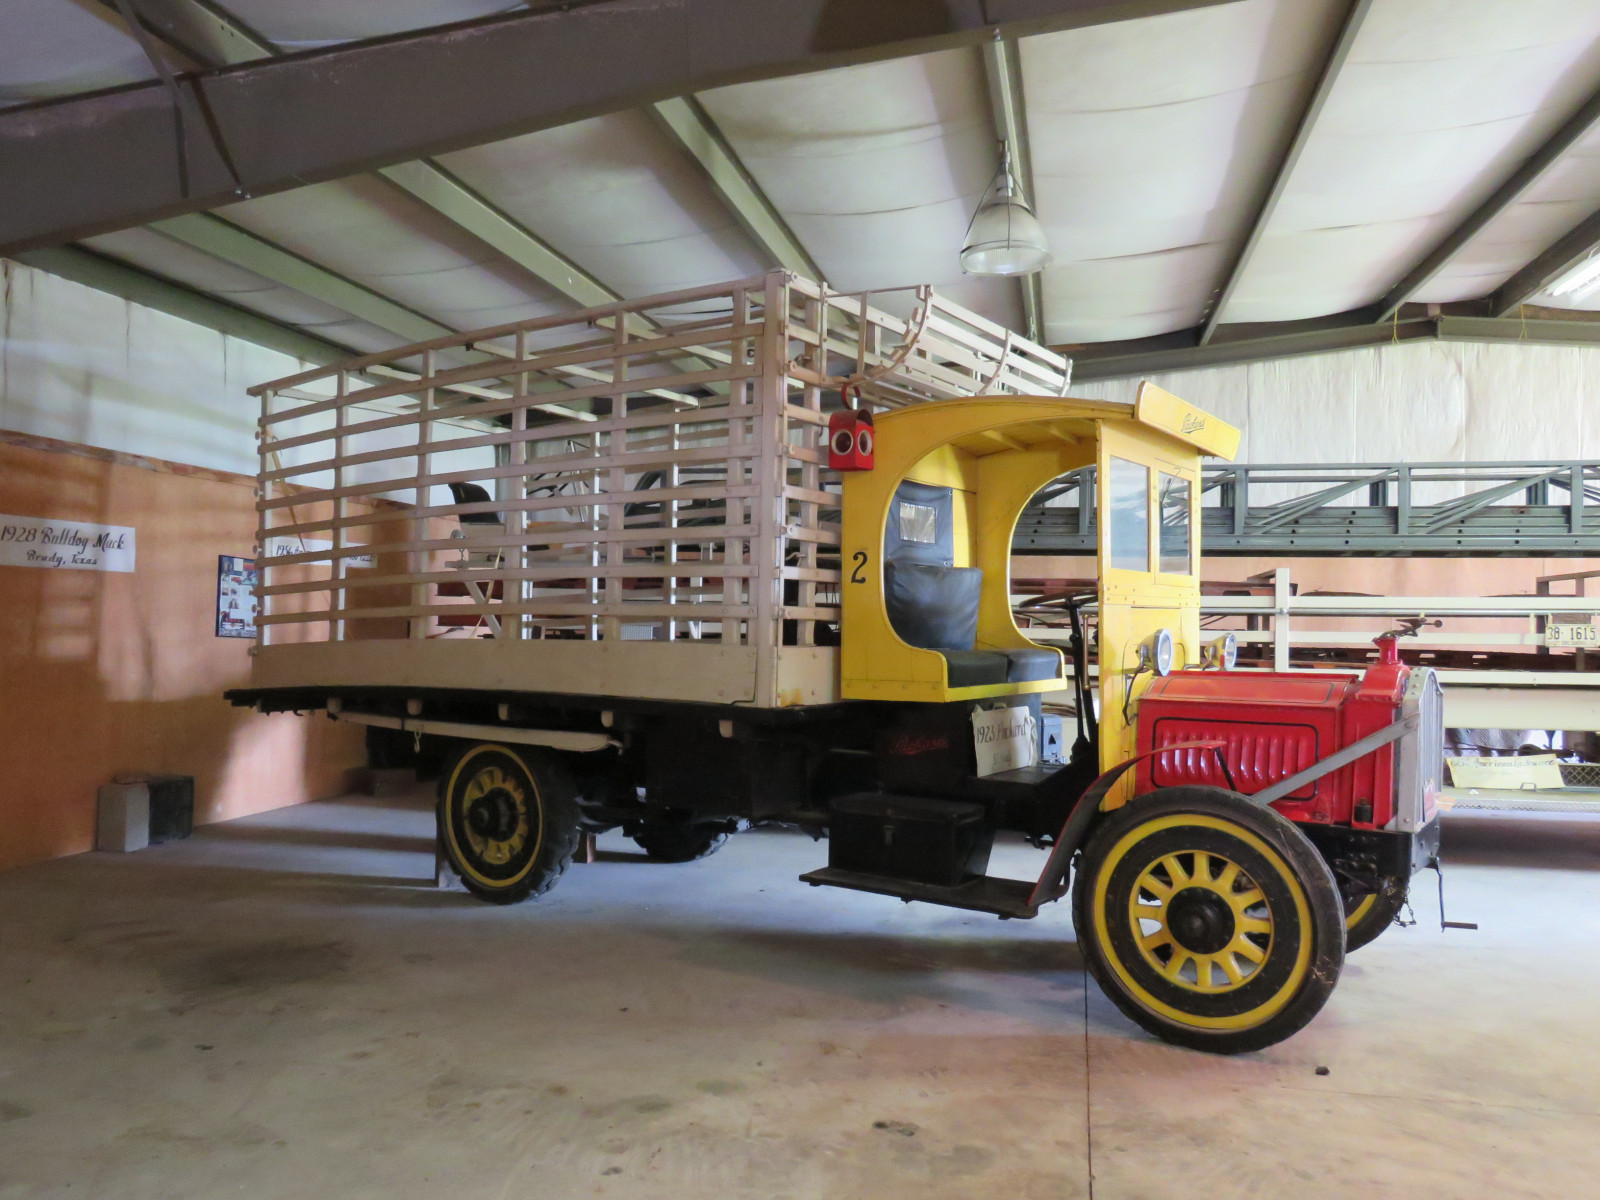 1923 Packard 2 ton Truck - Image 4